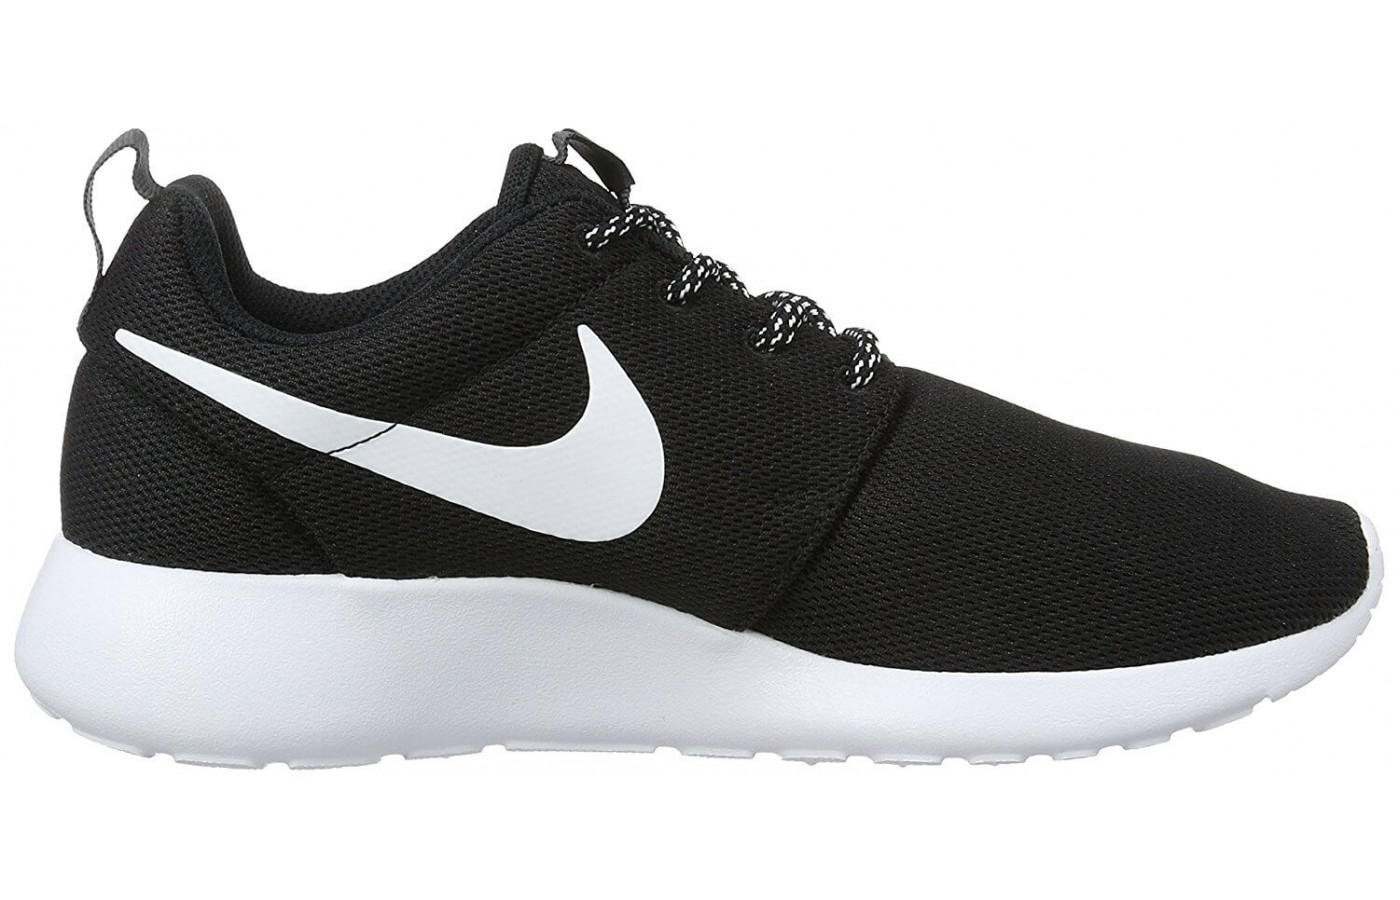 a254106b55e68 Nike Roshe One Reviewed - To Buy or Not in May 2019